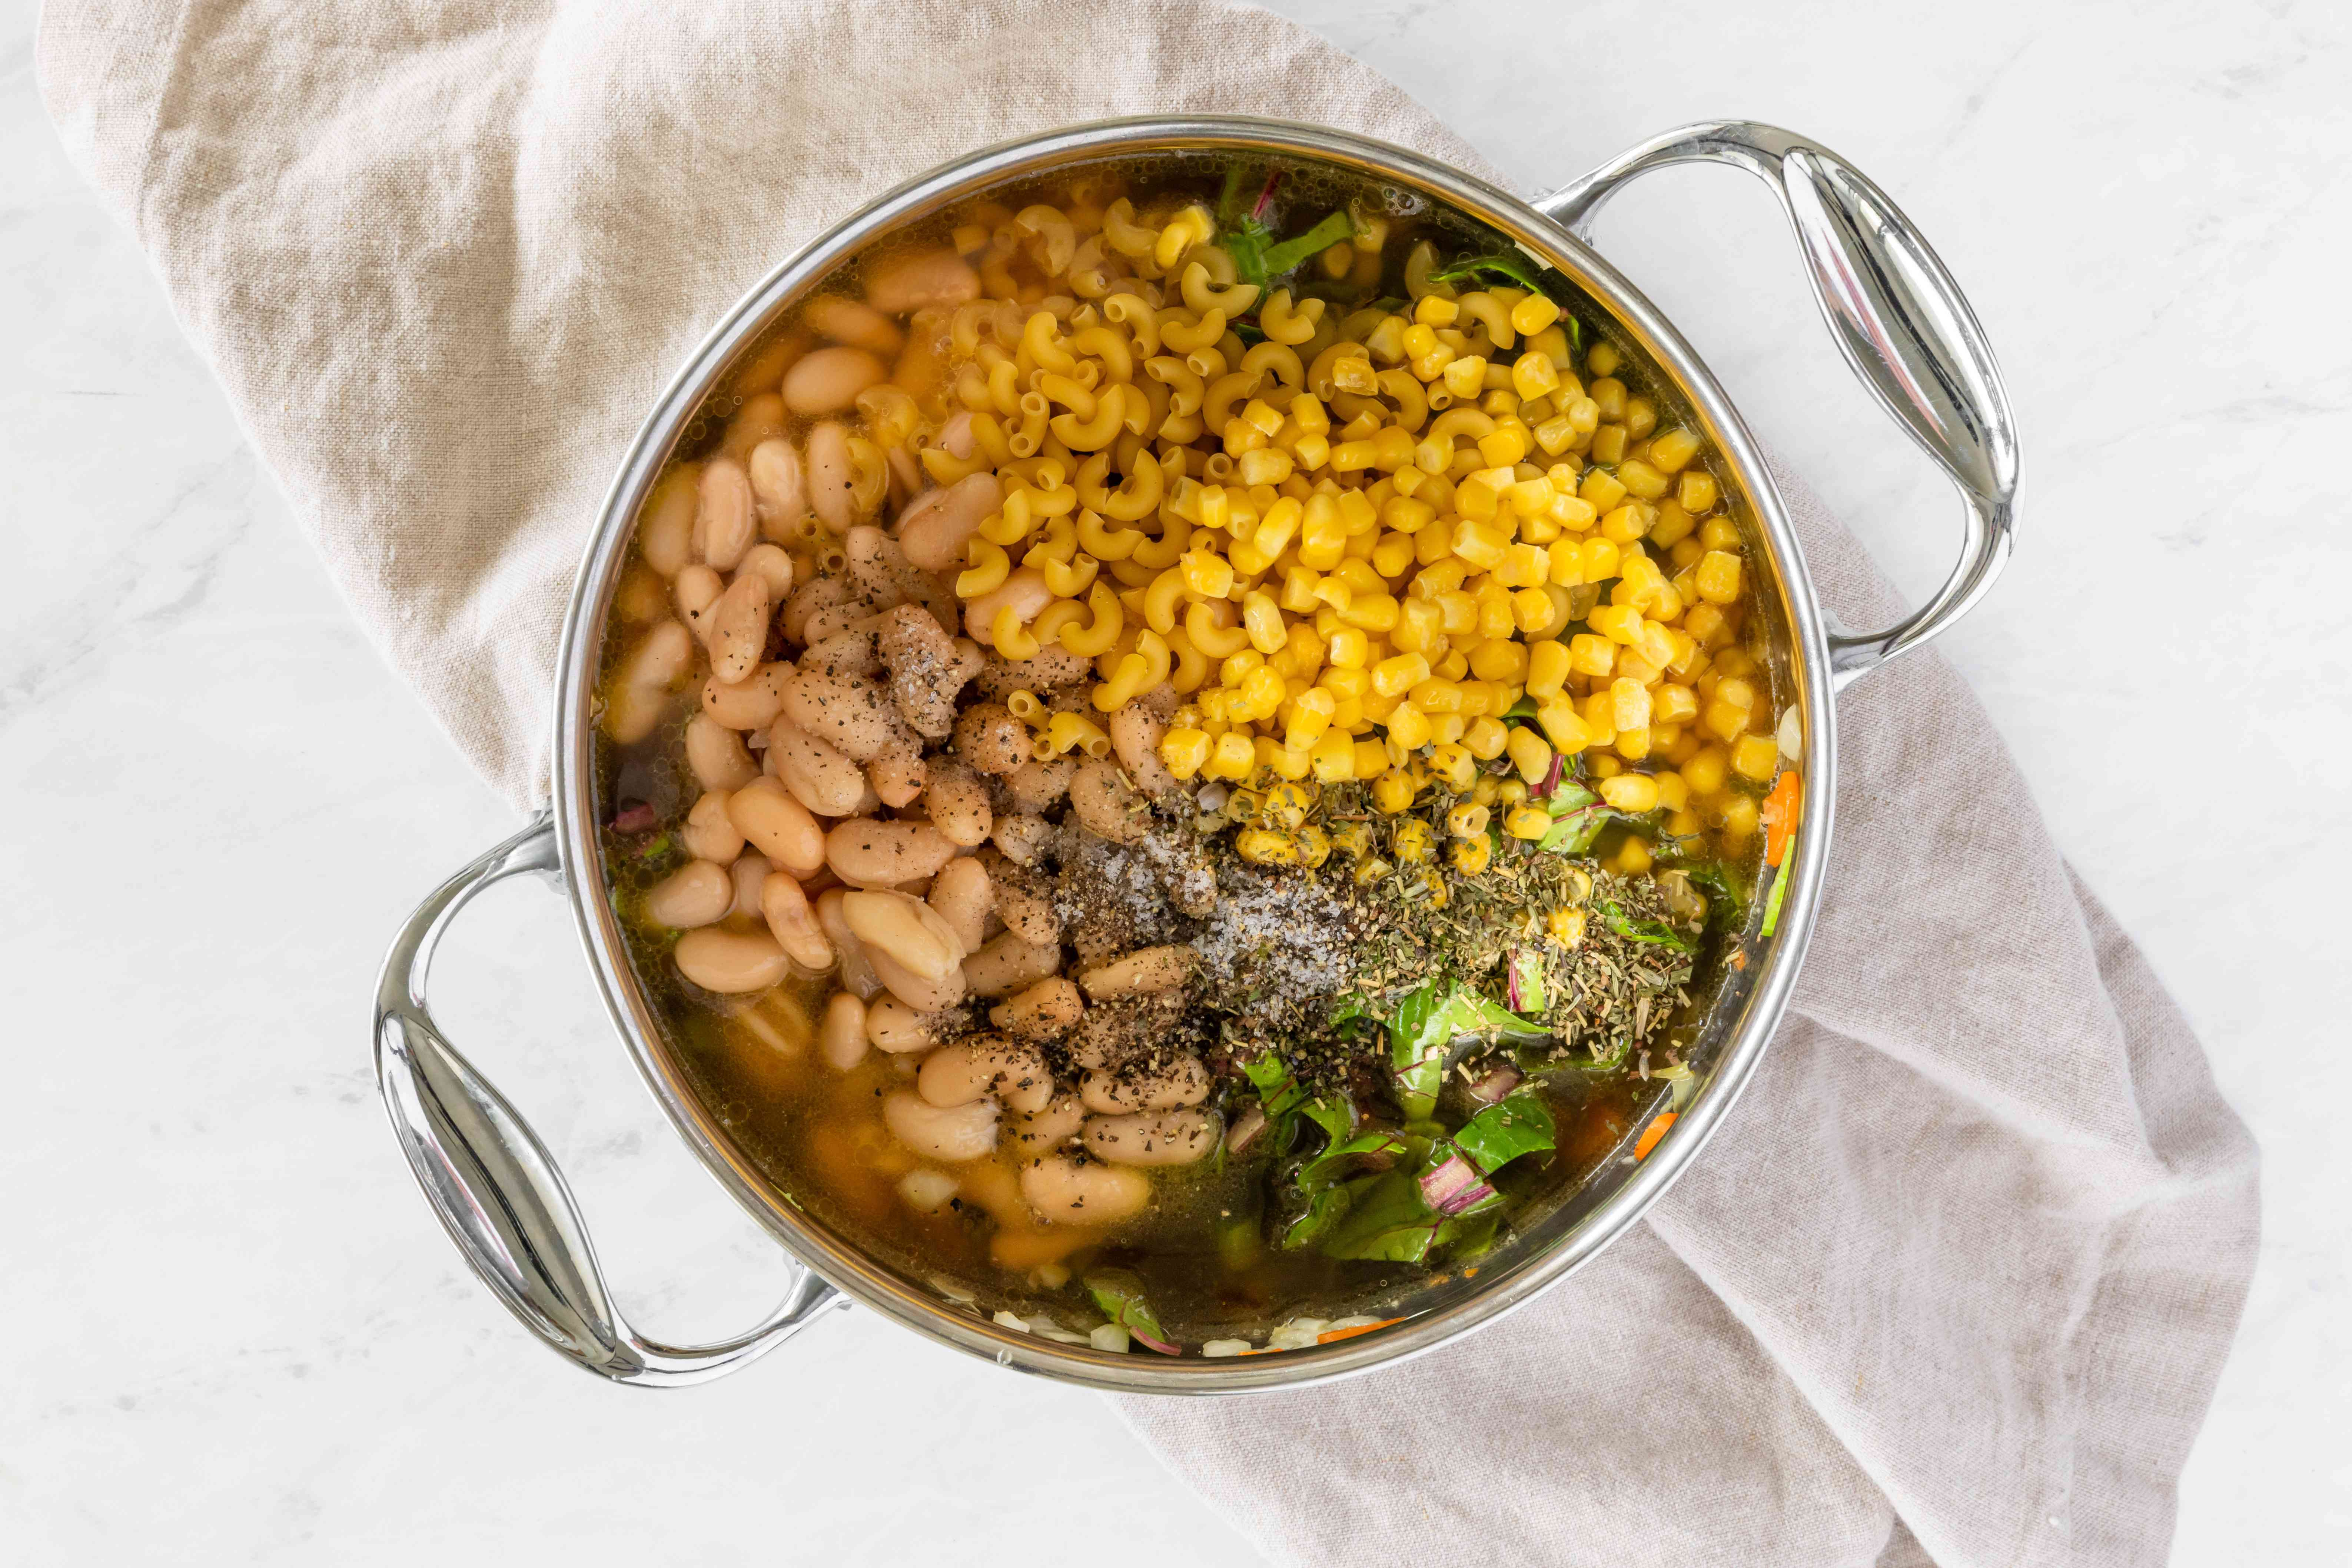 Add beans and other ingredients